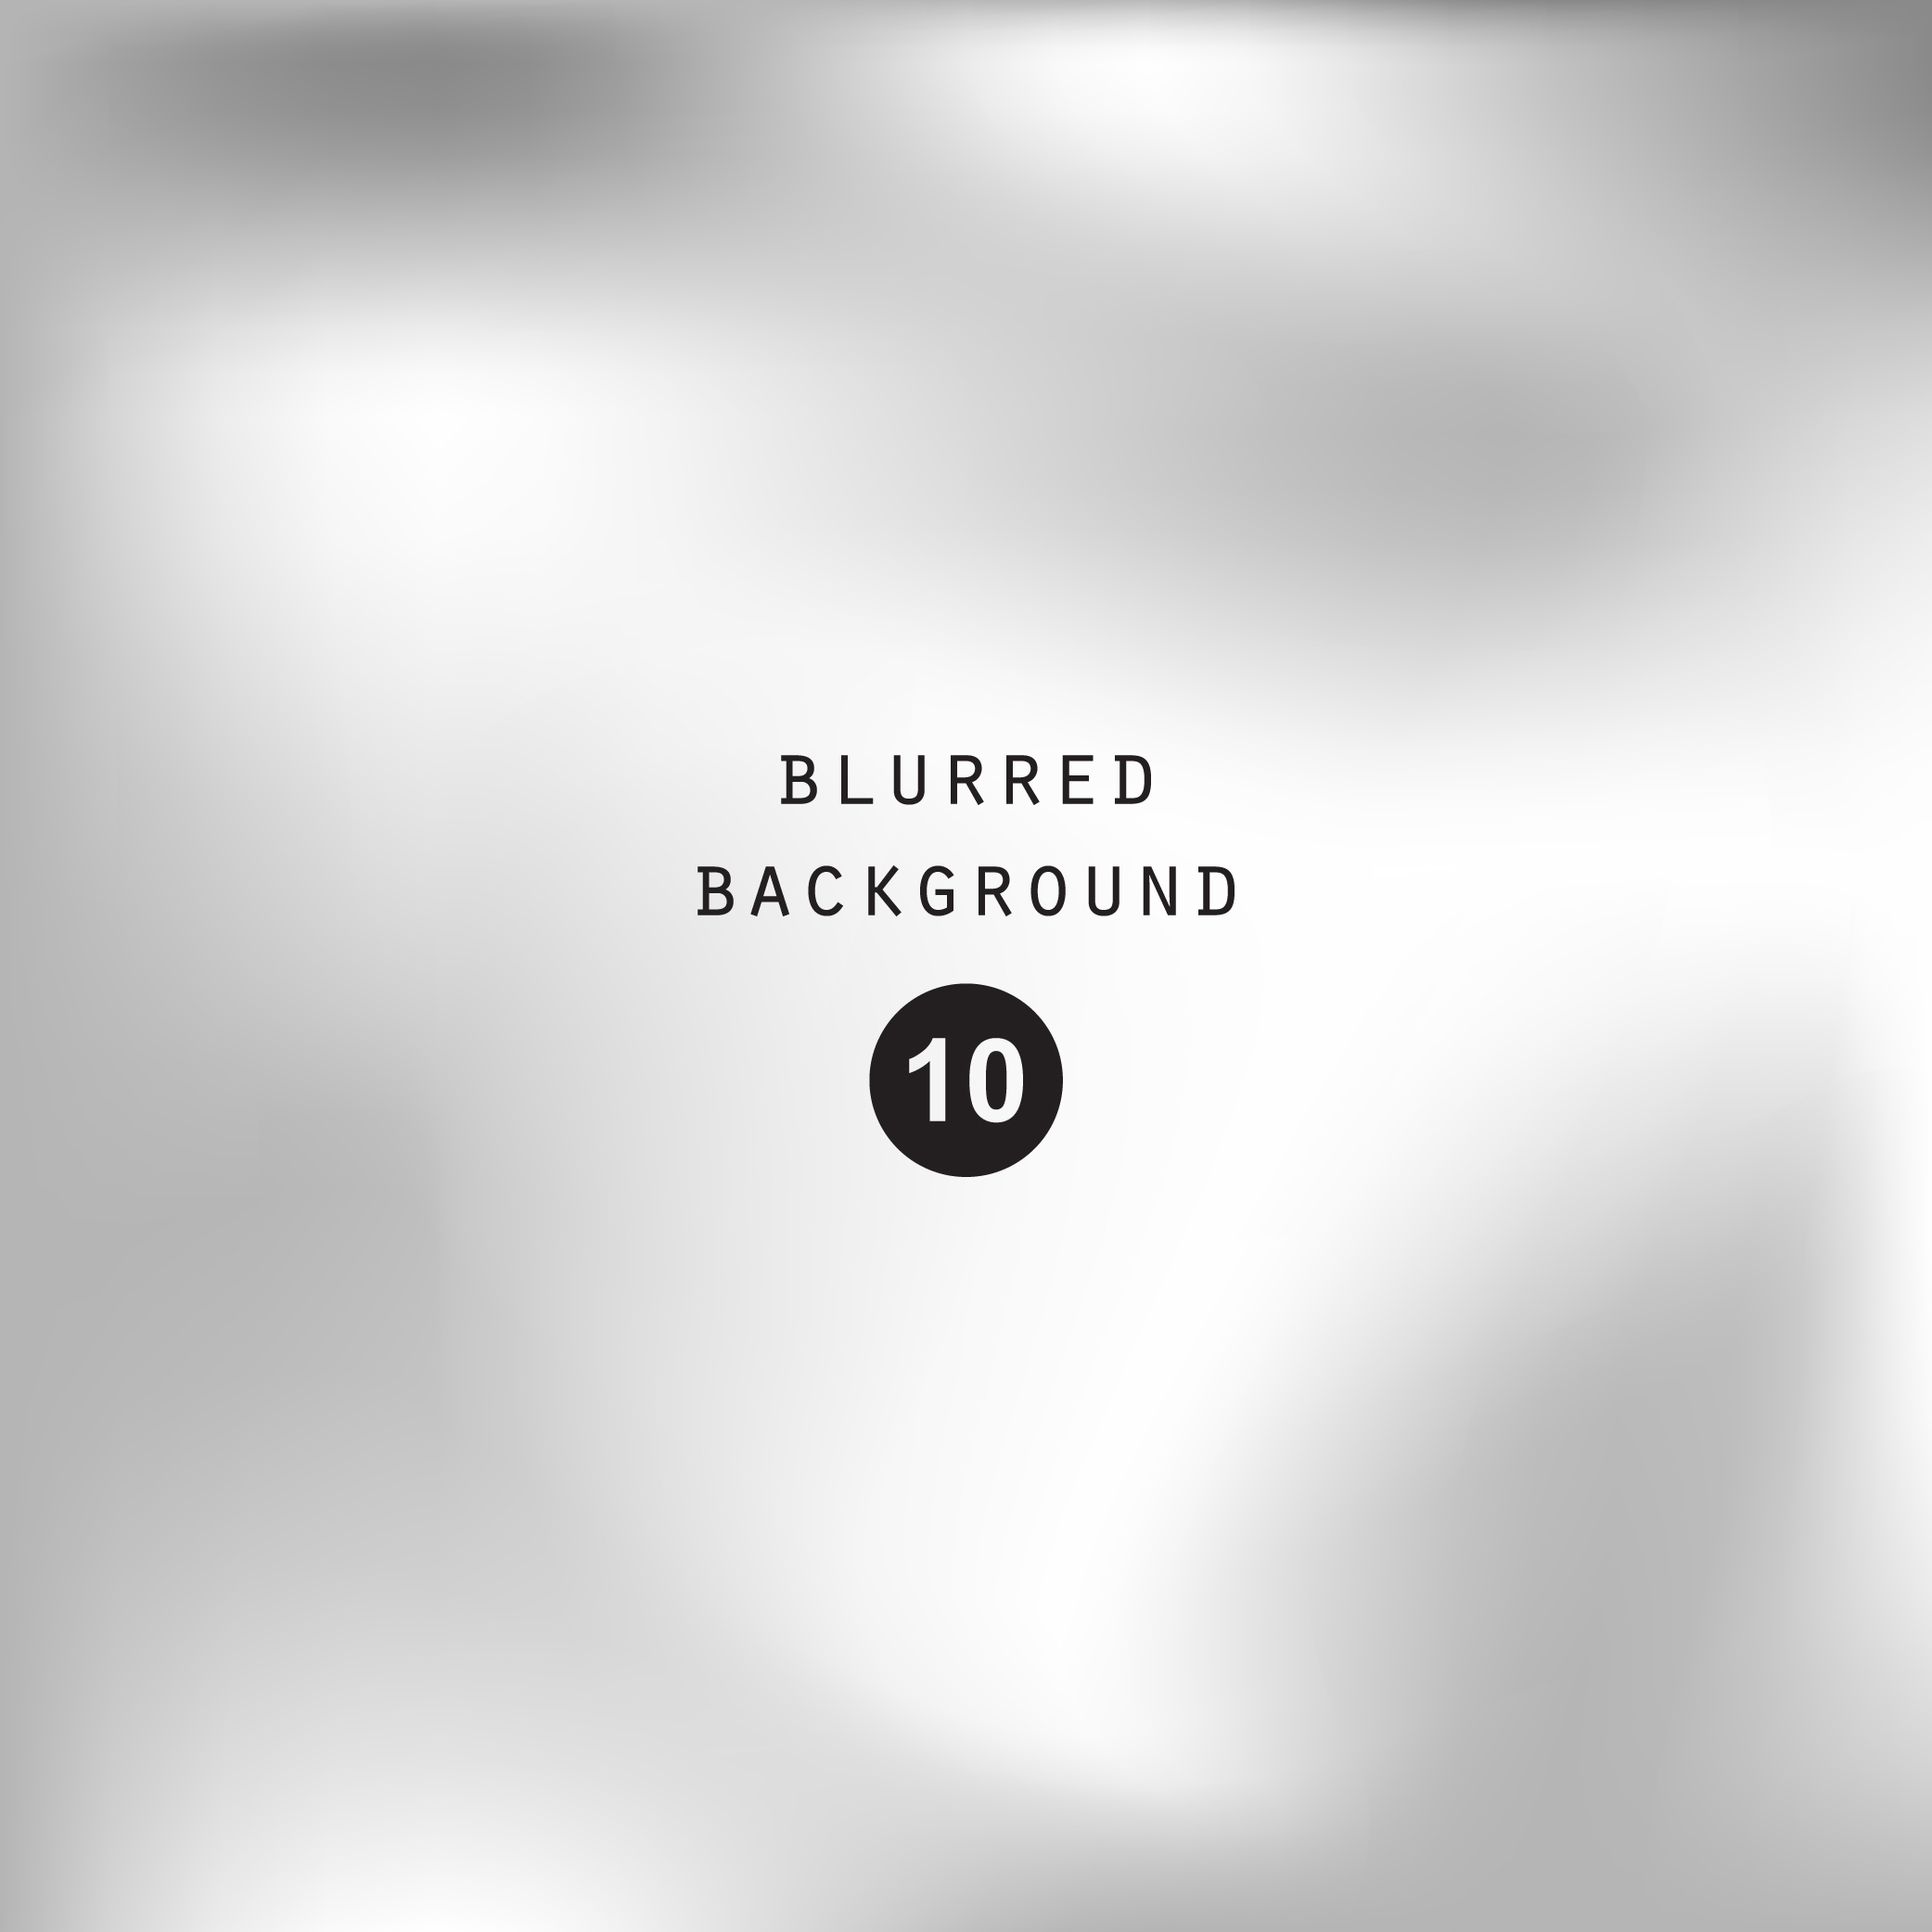 Blurred silver abstract gradient background example image 2